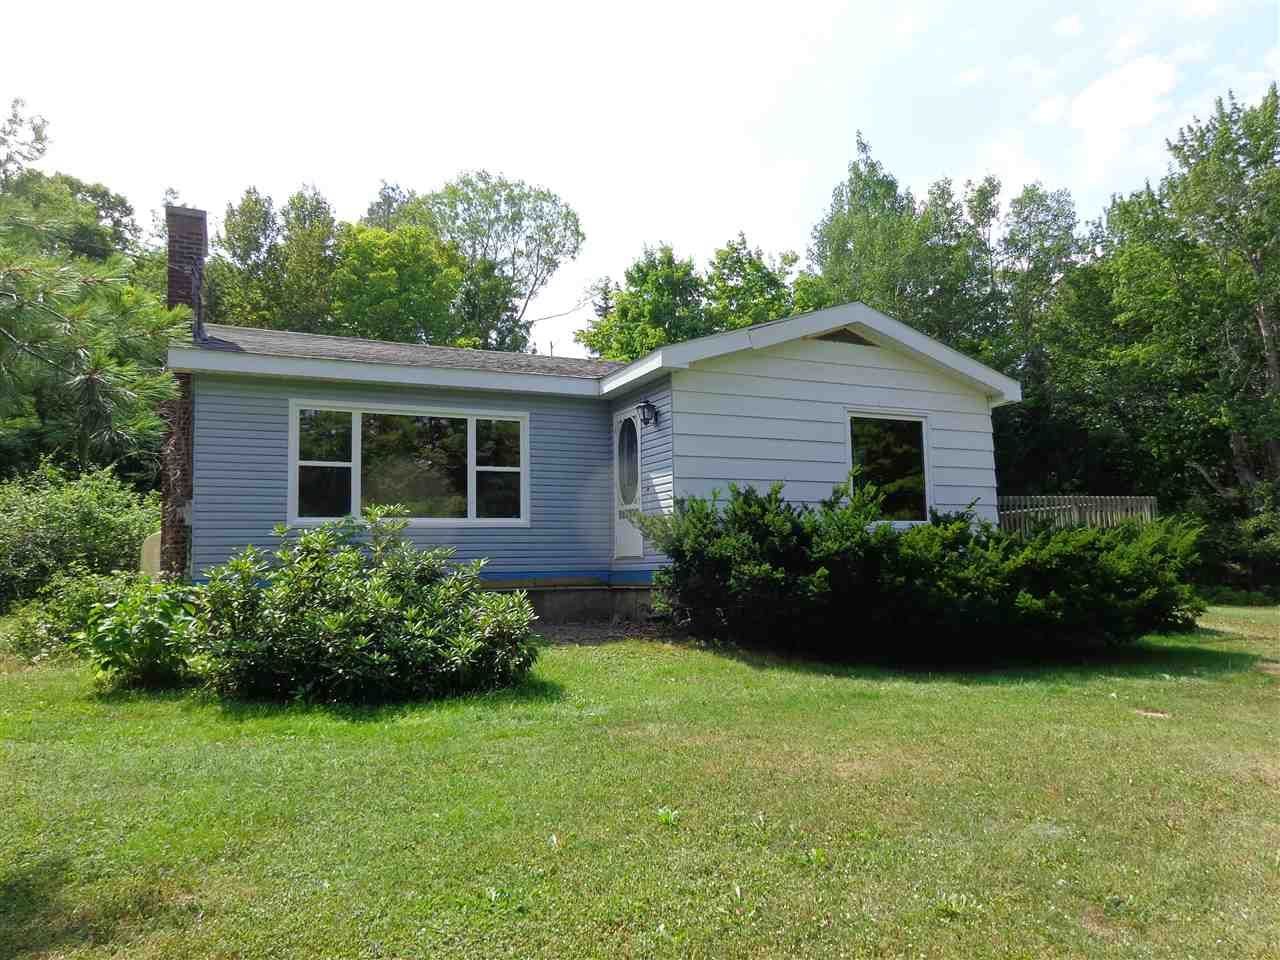 Main Photo: 1220 Highway 4 in Salt Springs: 108-Rural Pictou County Residential for sale (Northern Region)  : MLS®# 202016313